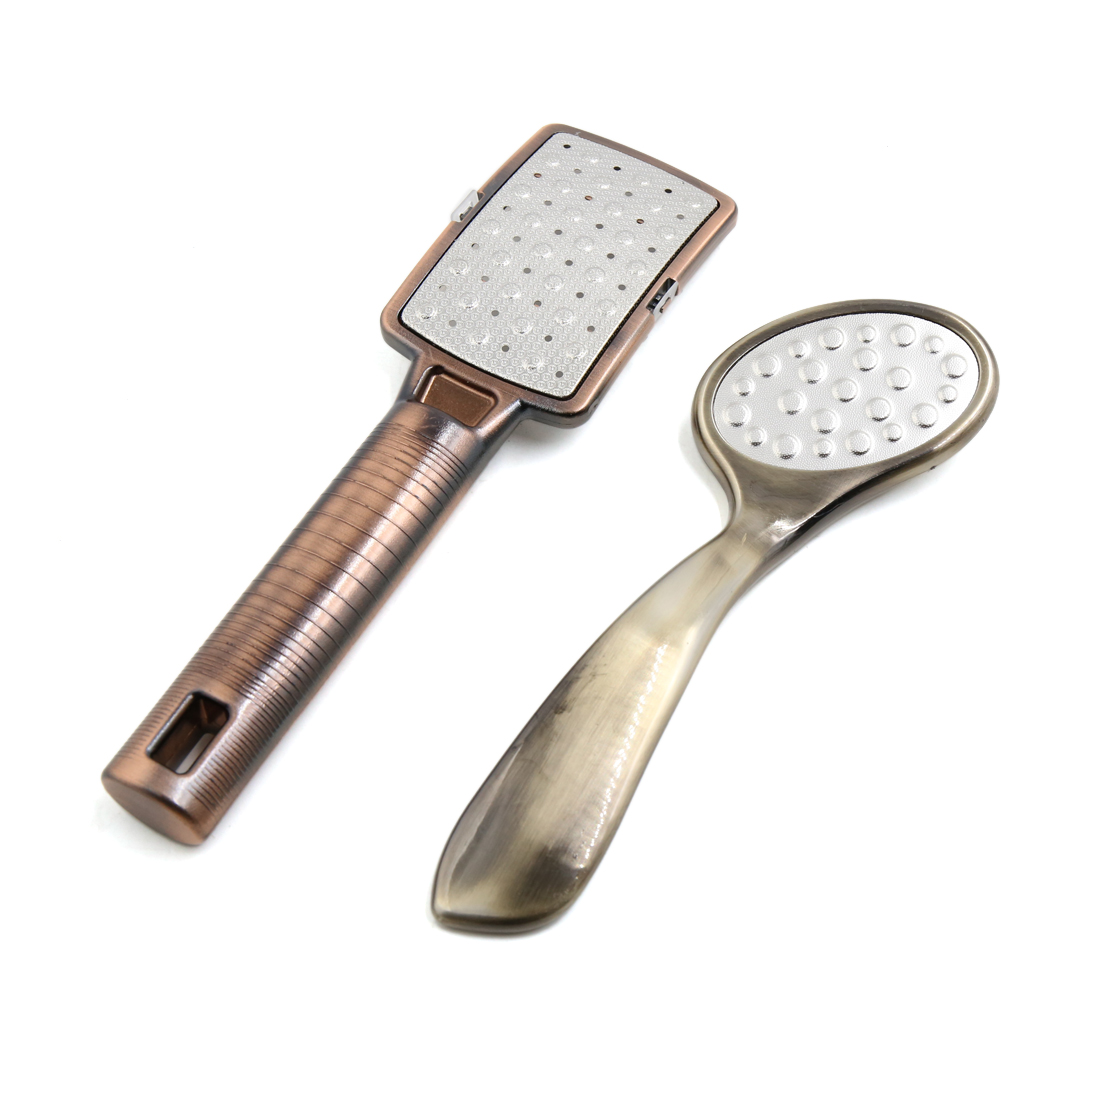 1 Set Metal Blade Foot Care Pedicure Calluses Corn Exfoliates Remover Scrubber File Rasp Tool